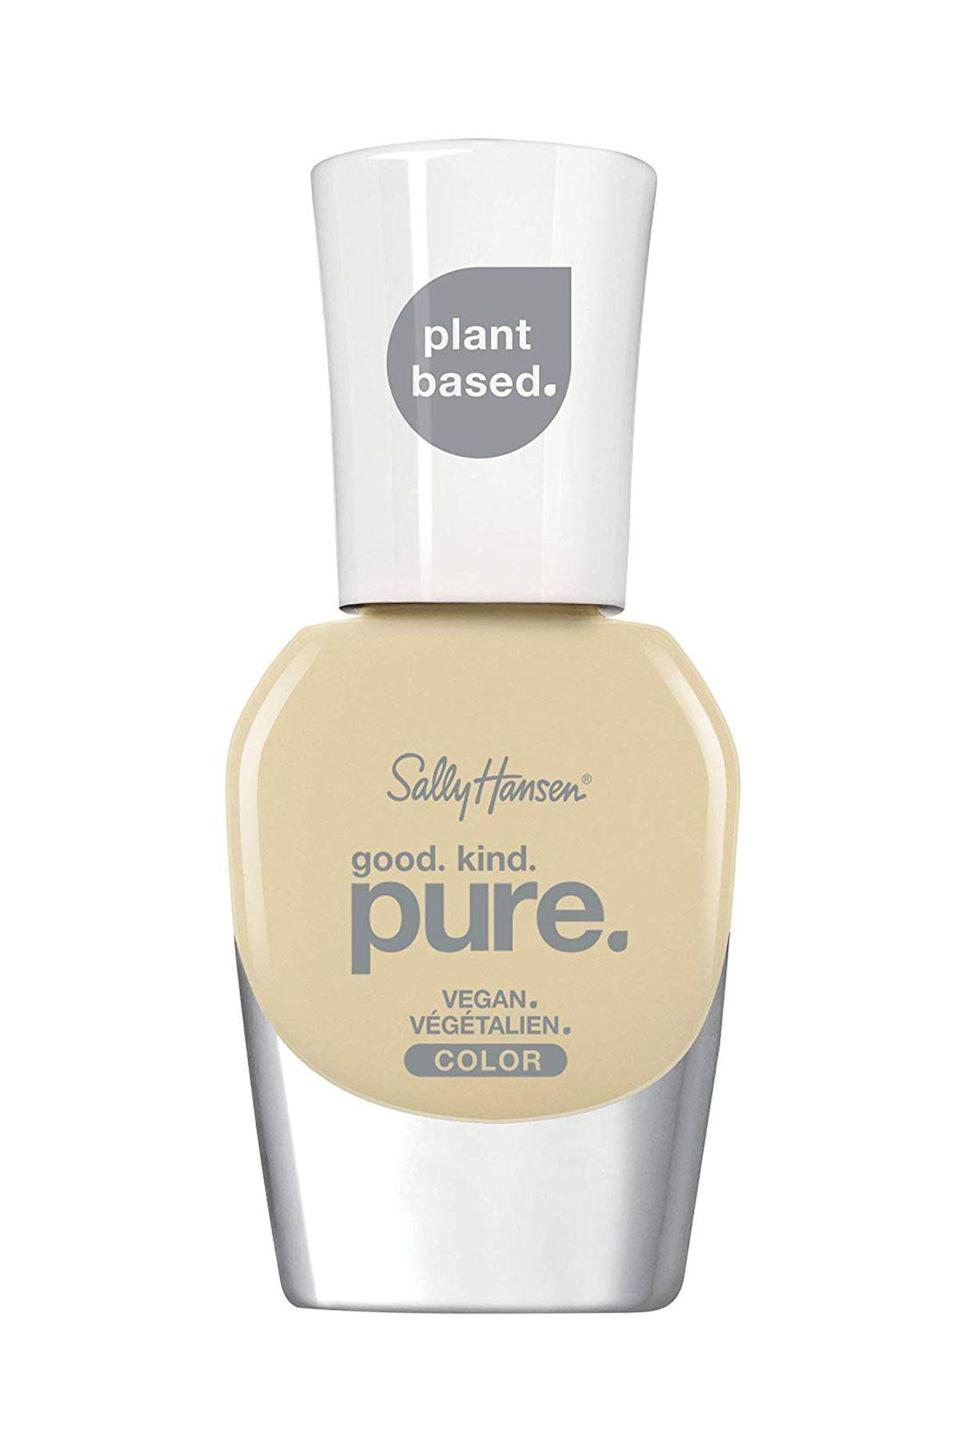 """<p><strong>Sally Hansen</strong></p><p>amazon.com</p><p><strong>$6.72</strong></p><p><a href=""""https://www.amazon.com/dp/B08148DKQ2?tag=syn-yahoo-20&ascsubtag=%5Bartid%7C10065.g.2741%5Bsrc%7Cyahoo-us"""" rel=""""nofollow noopener"""" target=""""_blank"""" data-ylk=""""slk:SHOP NOW"""" class=""""link rapid-noclick-resp"""">SHOP NOW</a></p><p>If a vivid yellow isn't really your kind of thing, try this toned down creamy variety instead.</p>"""